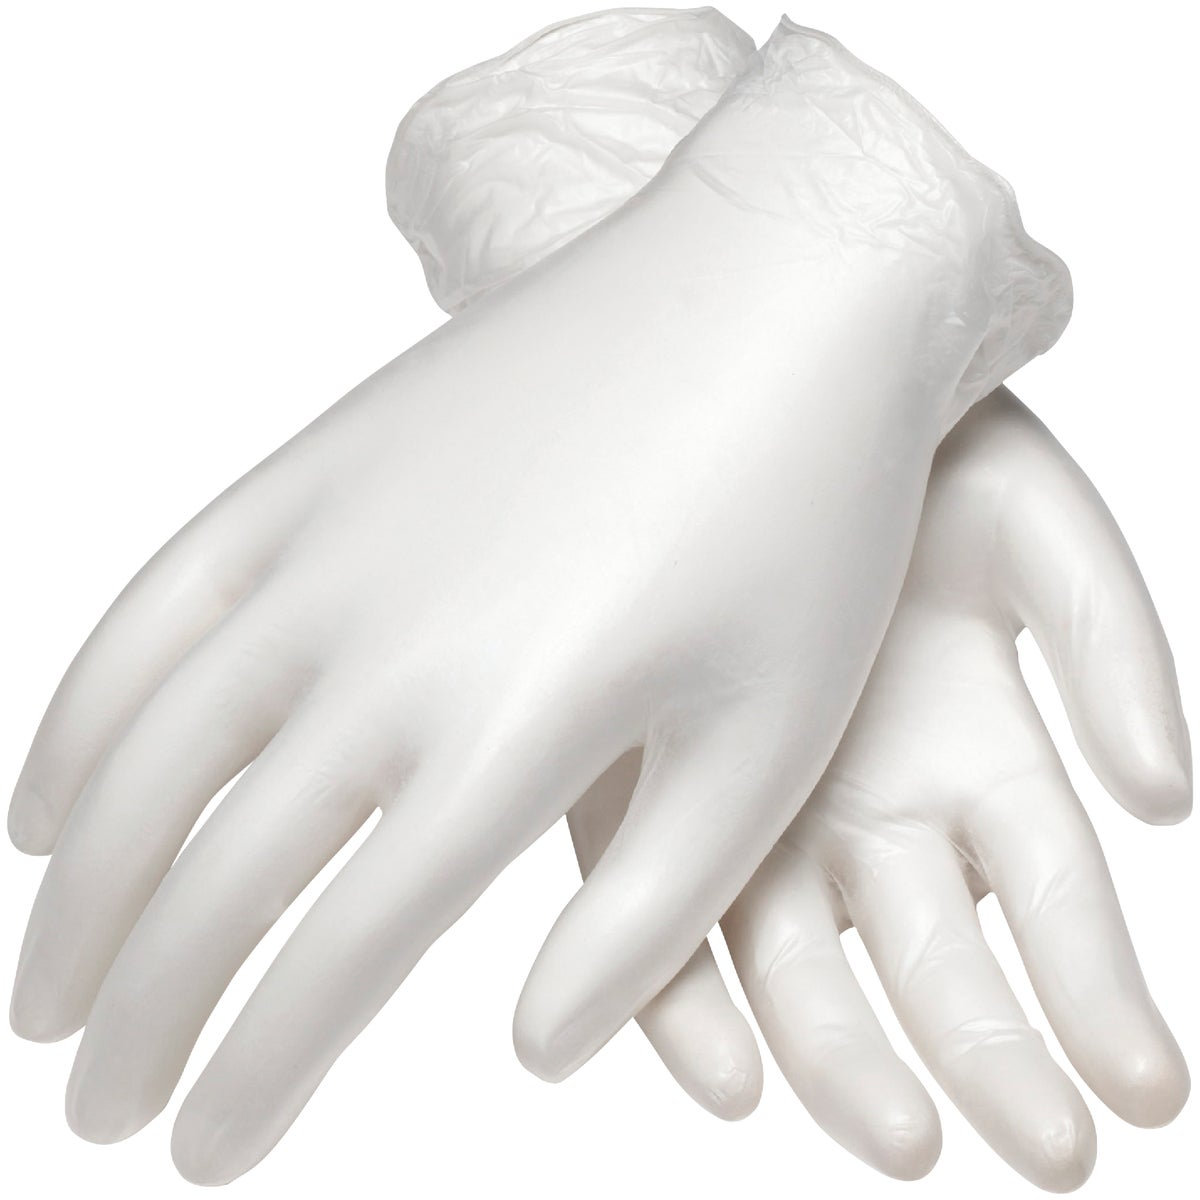 MEDIUM PF VINYL GLOVES - 2750/M by West Chester Incom